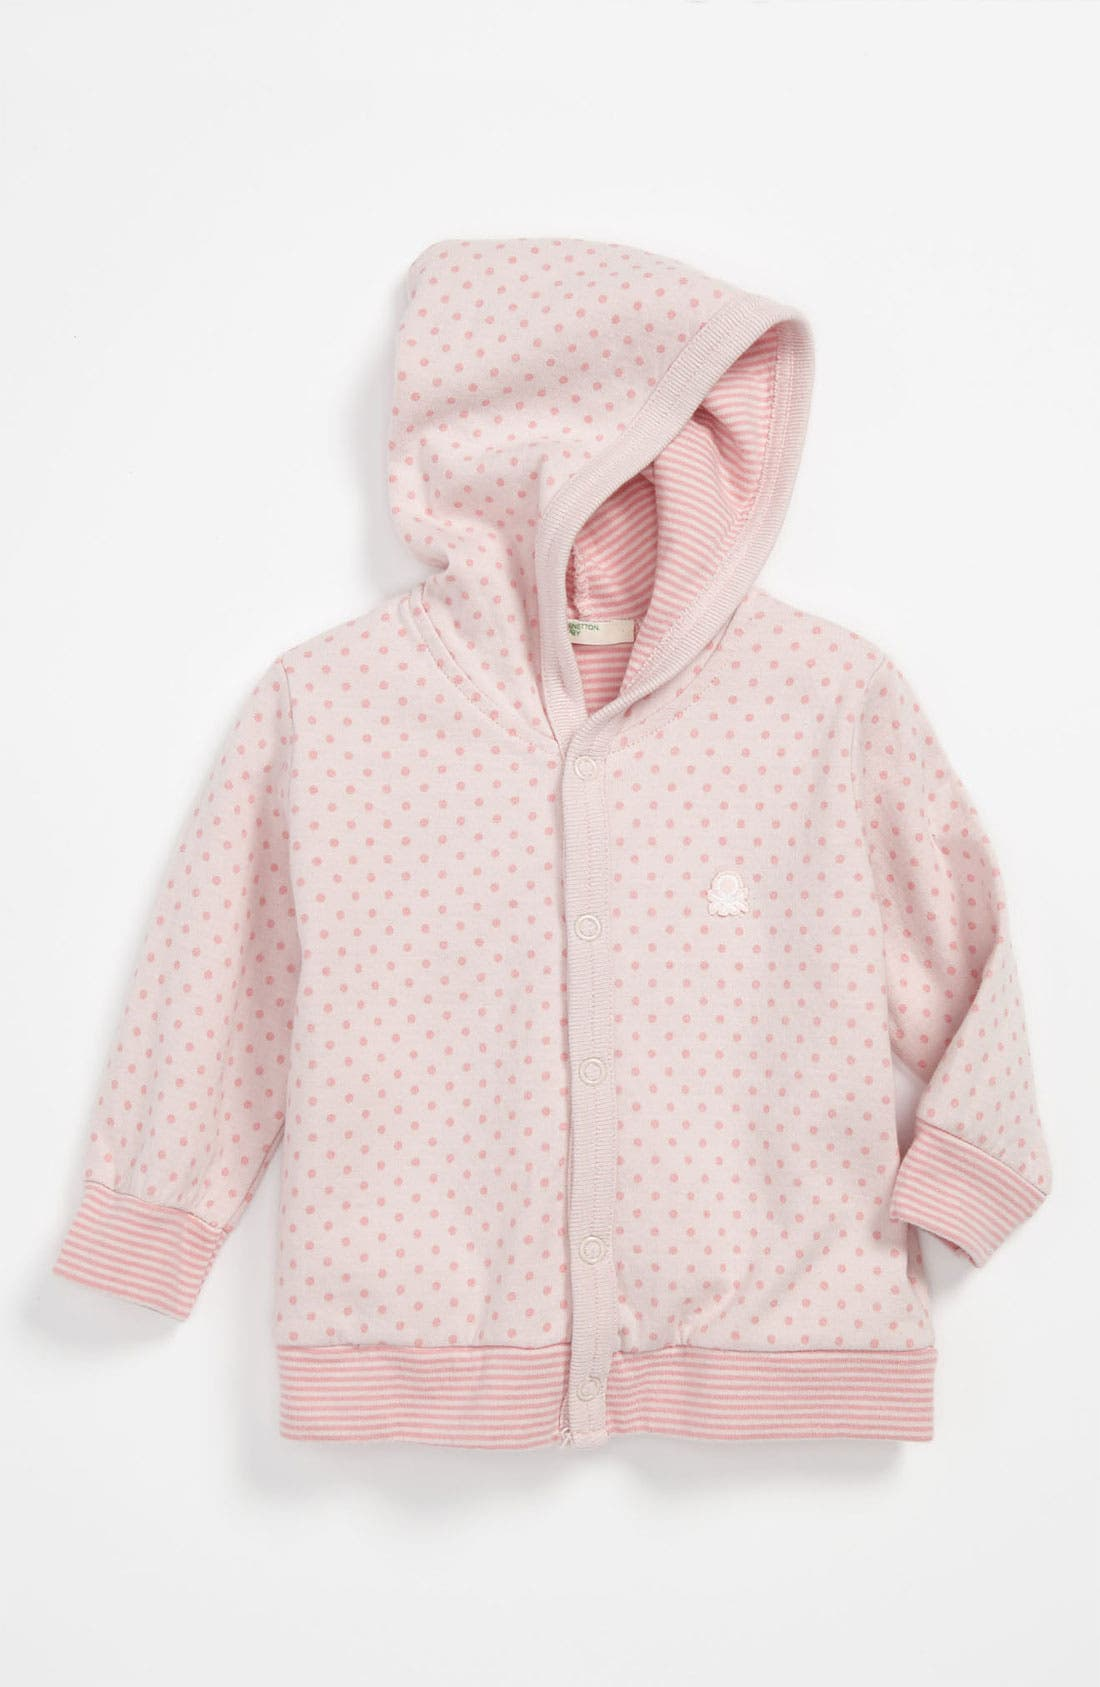 Main Image - United Colors of Benetton Kids Polka Dot Hoodie (Baby)